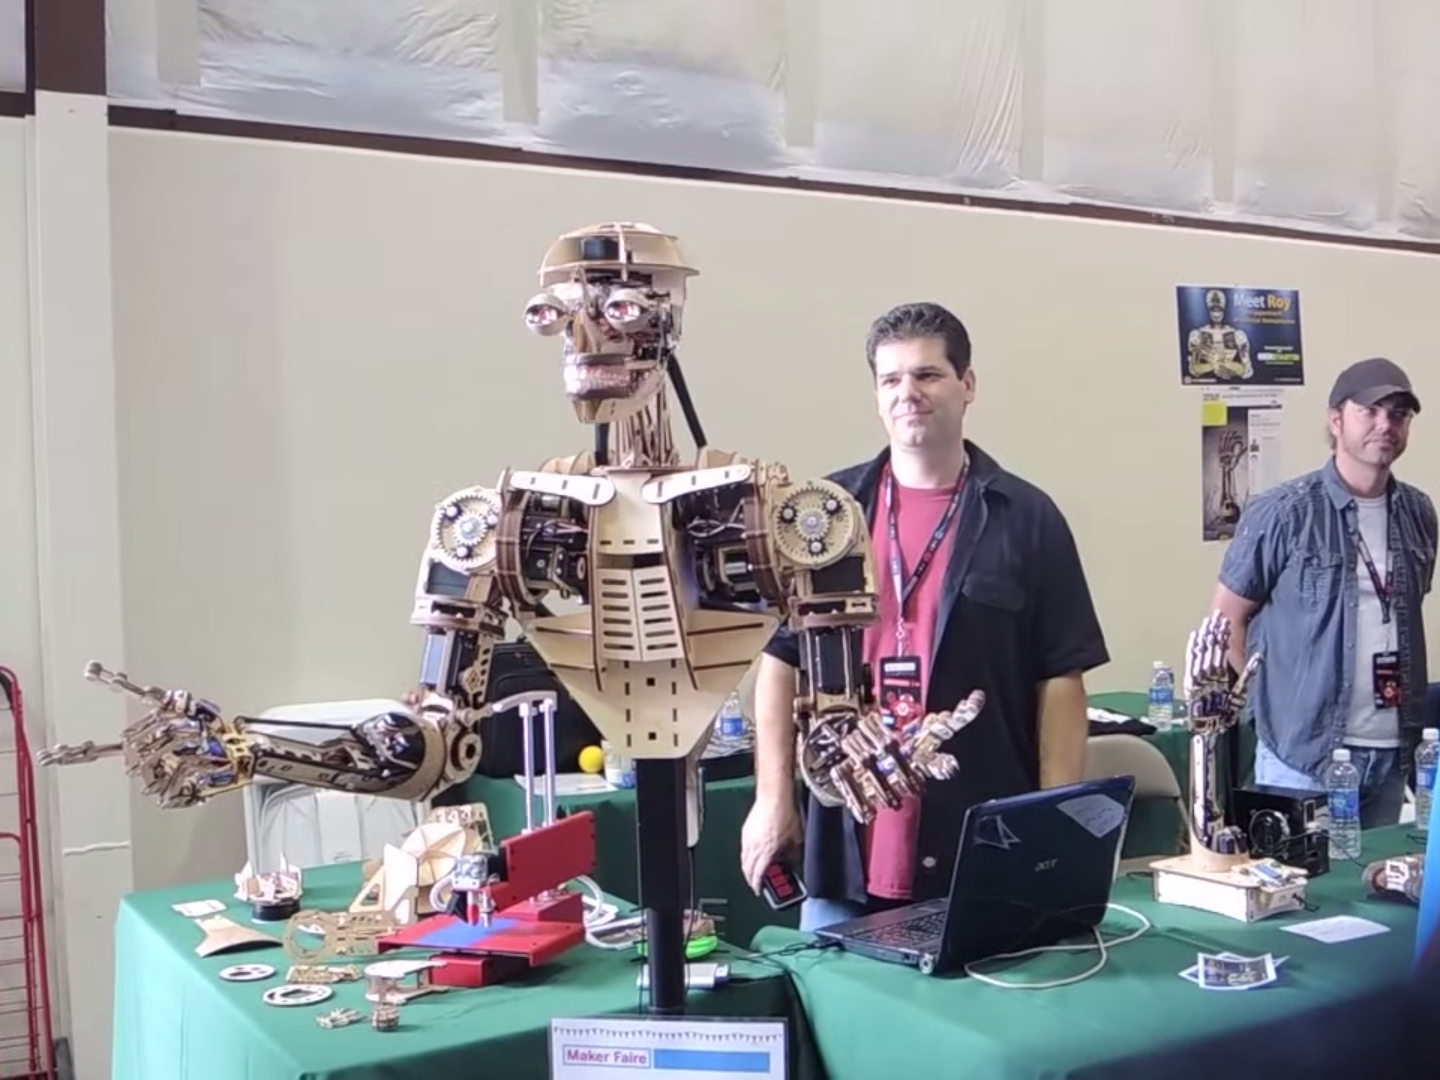 Roy the Robot